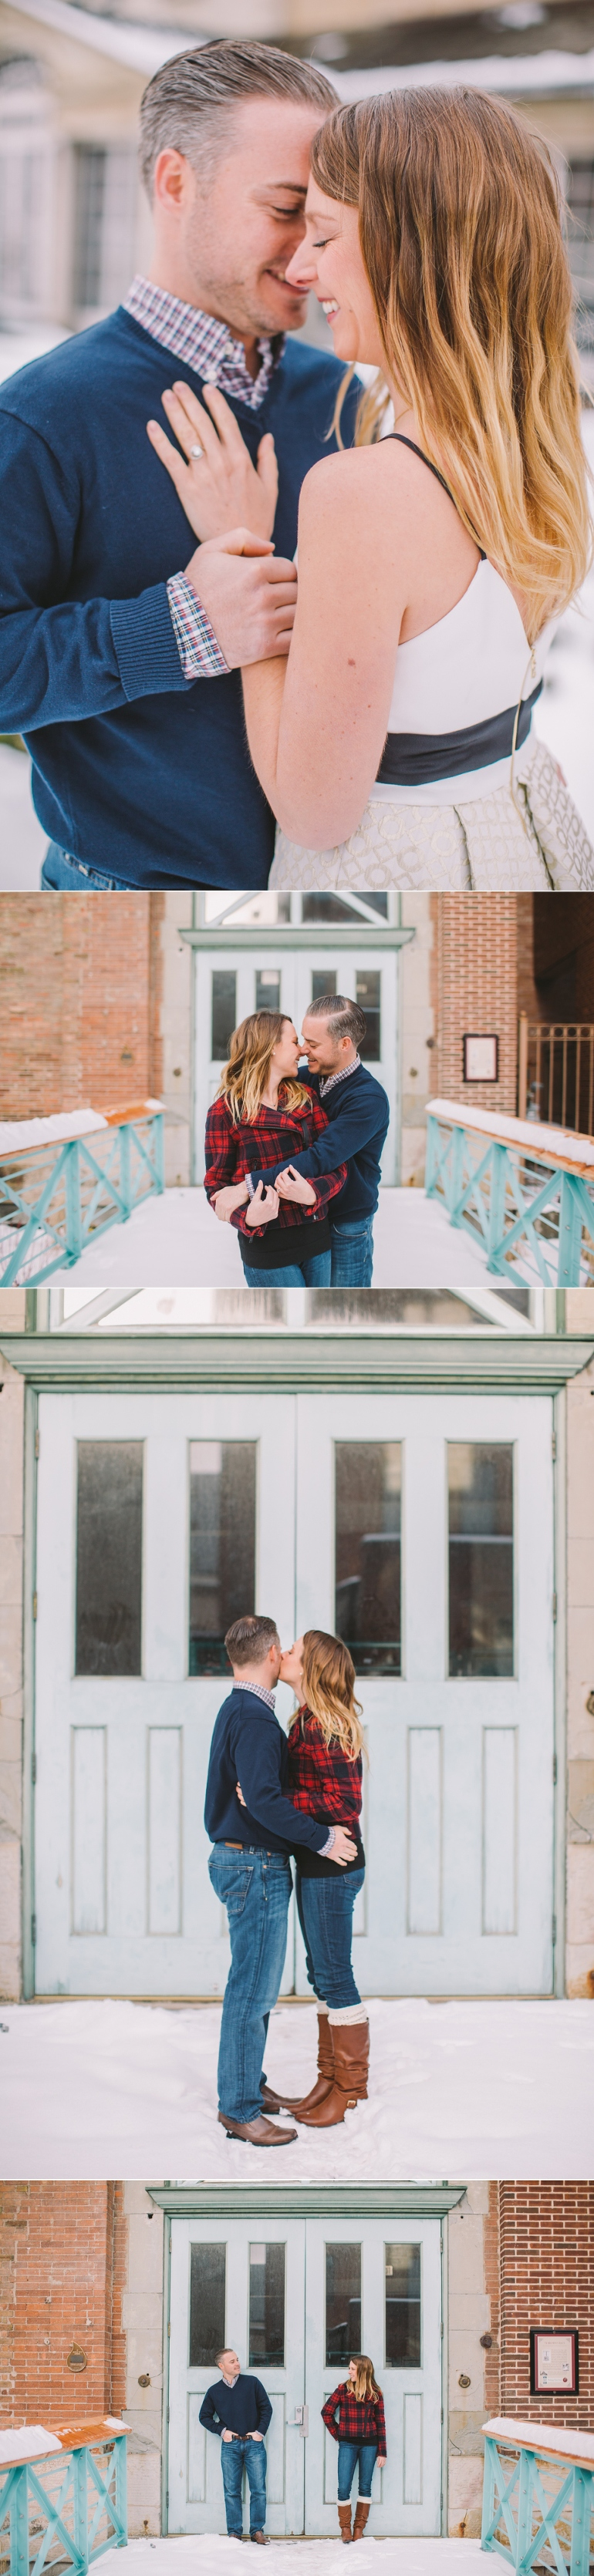 george-eastman-house-engagement-shoot-2016-tb_0004